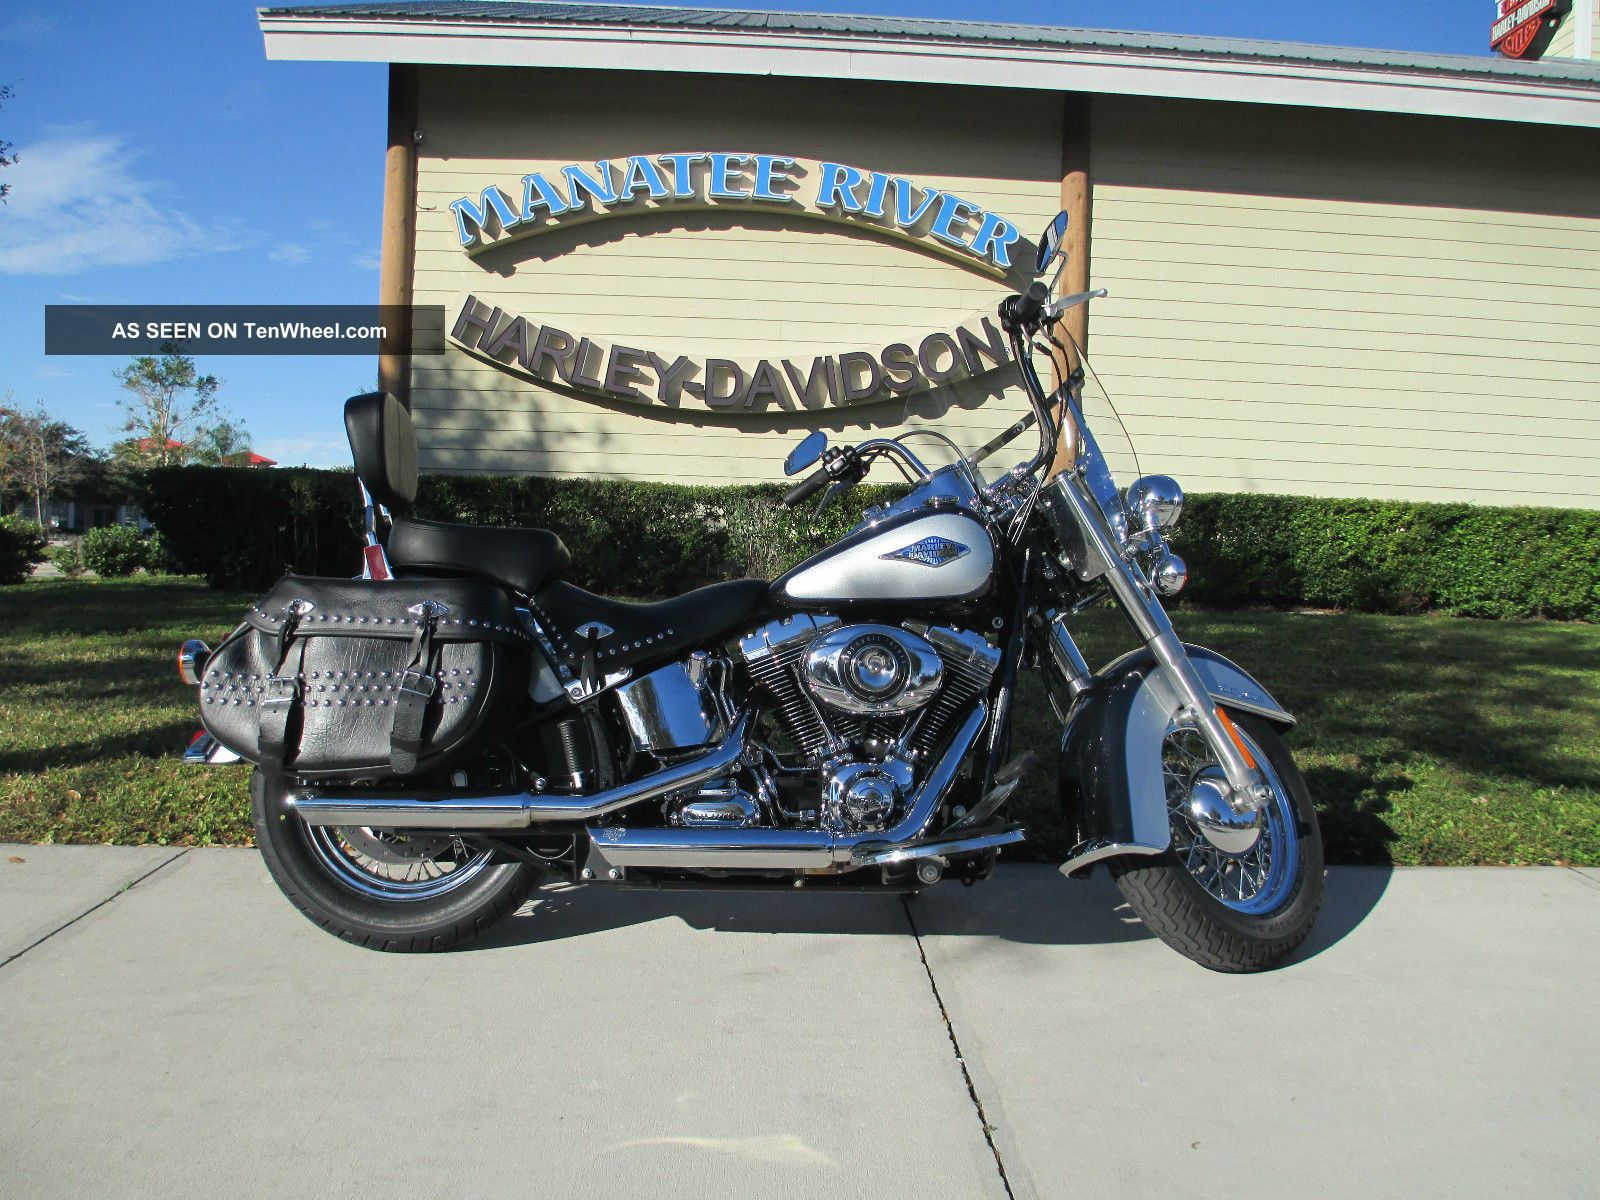 2012 Harley - Davidson® Flstc - Heritage Softail® Classic Softail photo